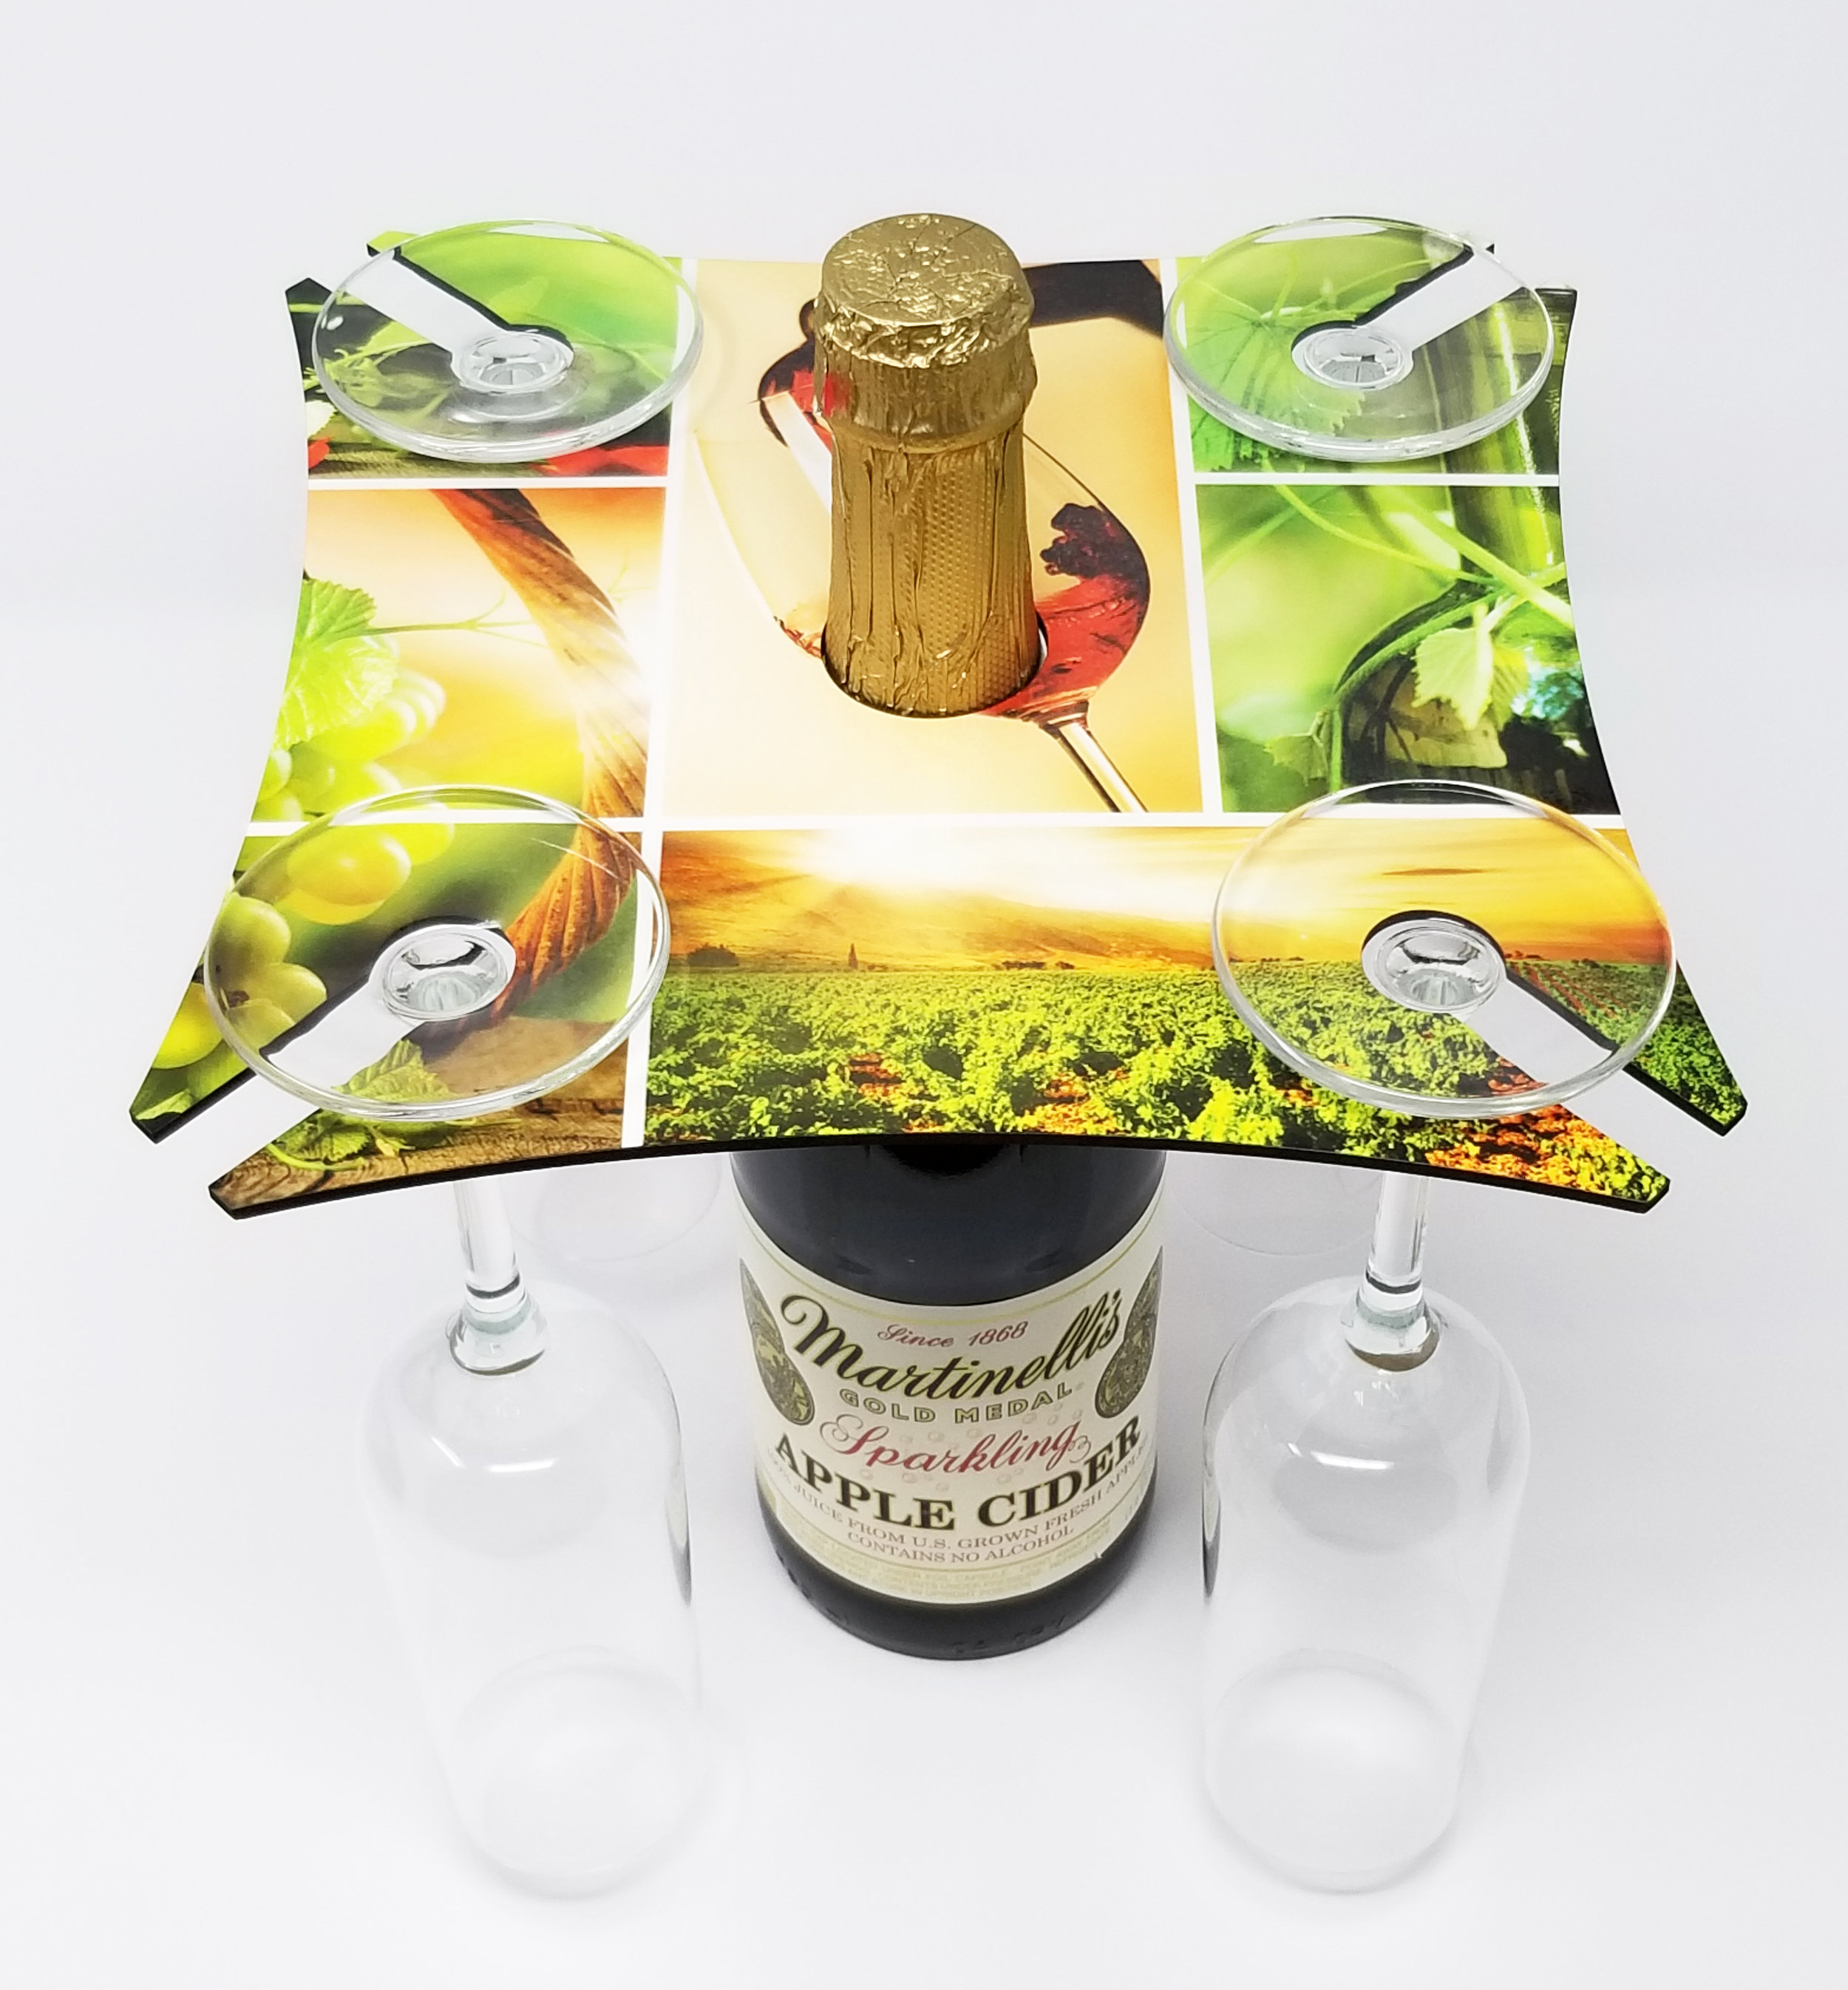 "Large SQUARE CADDIE. Hardboard tray with hole for the wine bottle and slots for the glasses. 1-sided. 5.25""x 9.5"" x.25"" tray. Clever little tray enables a great presentation for restaurants or attractive side board displays. A great gift item. $18.00."